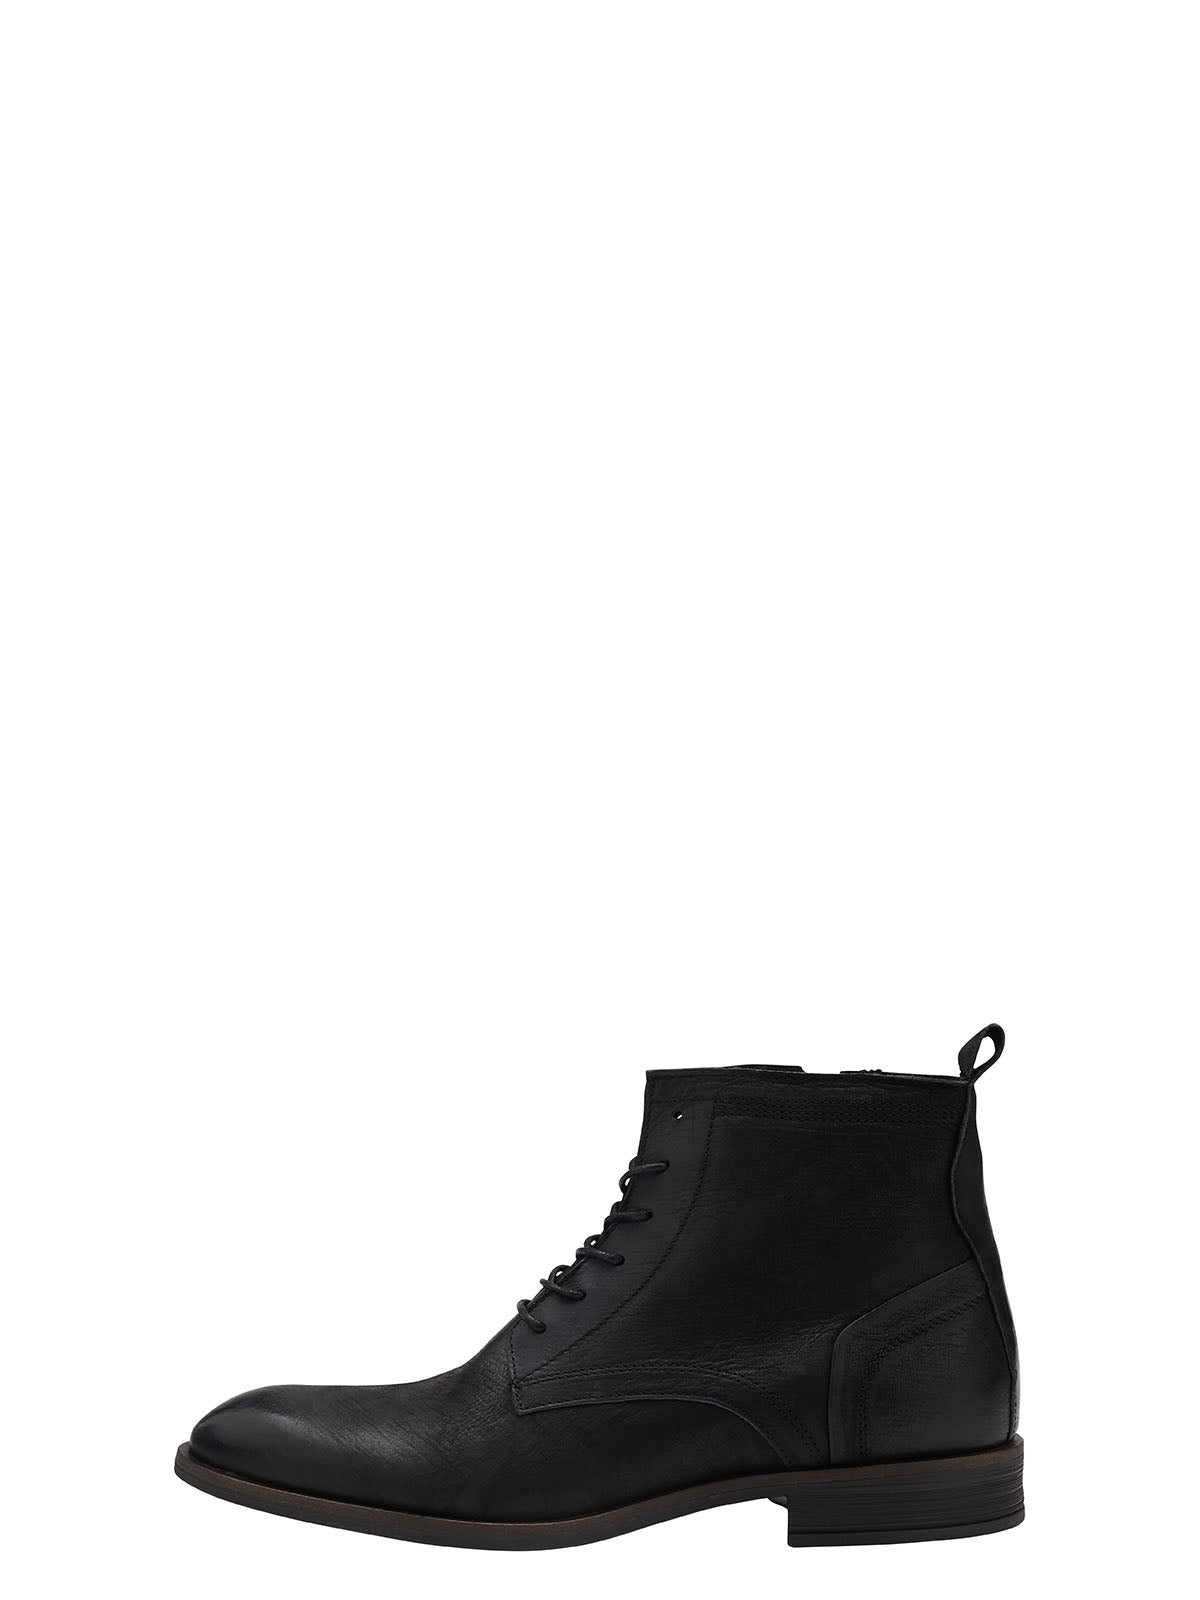 BFByron Leather Lace Up - Black